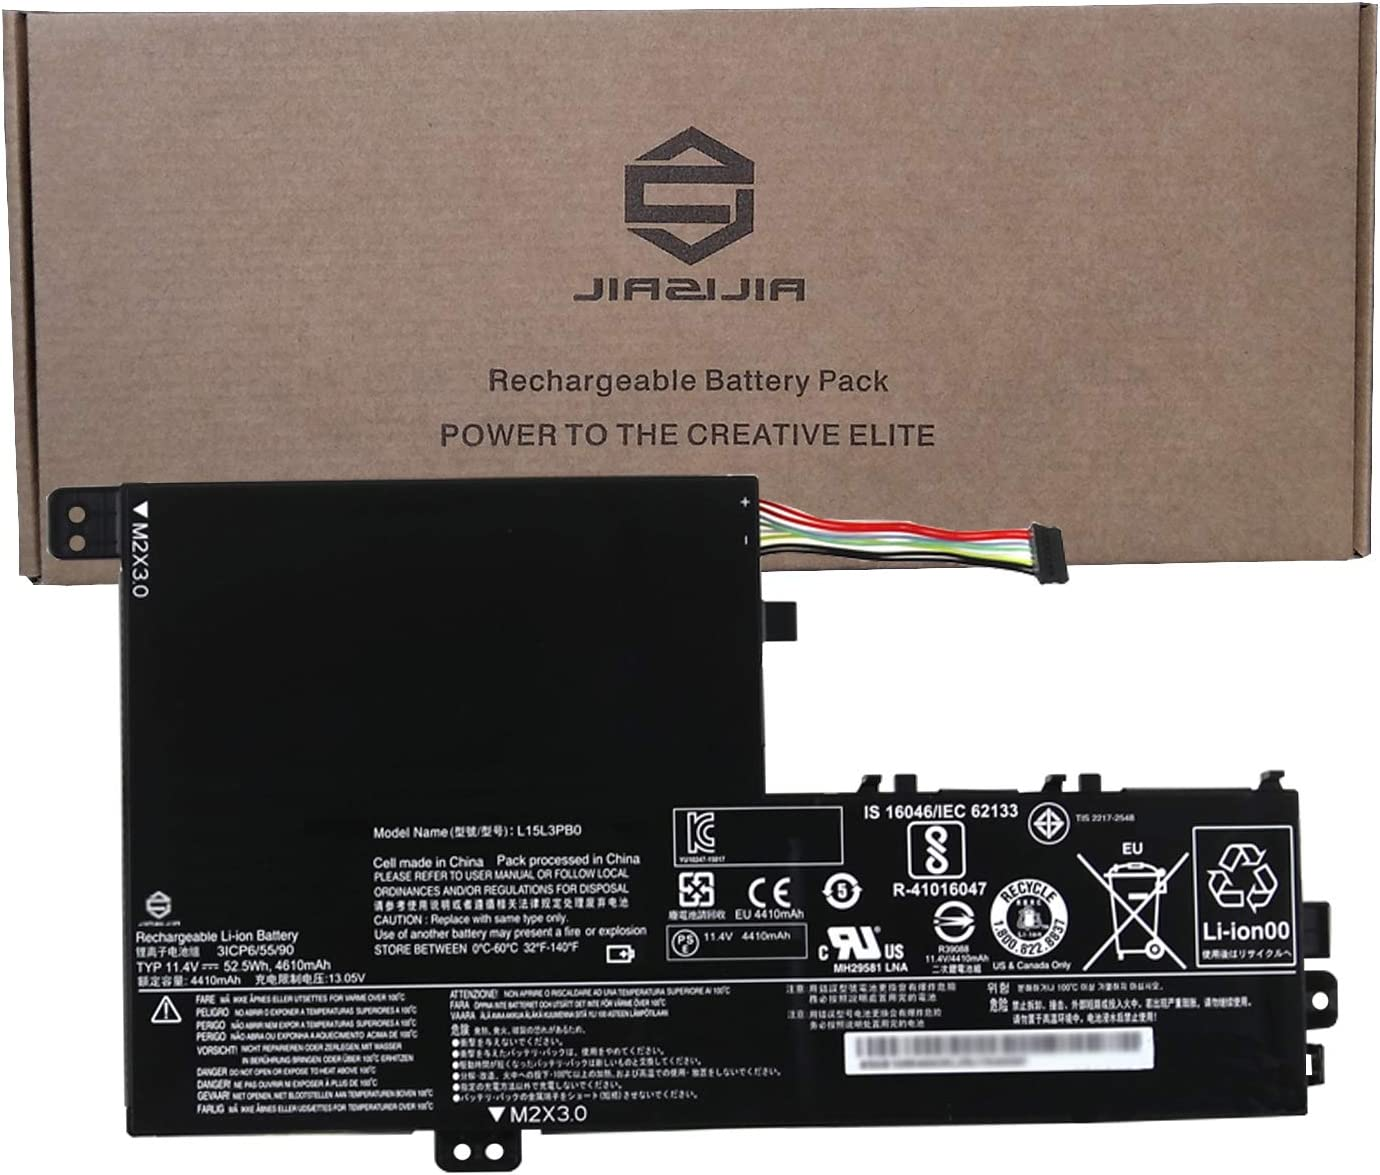 JIAZIJIA L15L3PB0 Laptop Battery Replacement for Lenovo Flex 5 1570 1470 IdeaPad 320S-14IKB 320S-15ABR 320S-15AST 320S-15IKB 320S-15ISK 520S-14IKB Series L15M3PB0 Type-A 11.4V 52.5Wh 4610mAh 3-Cell